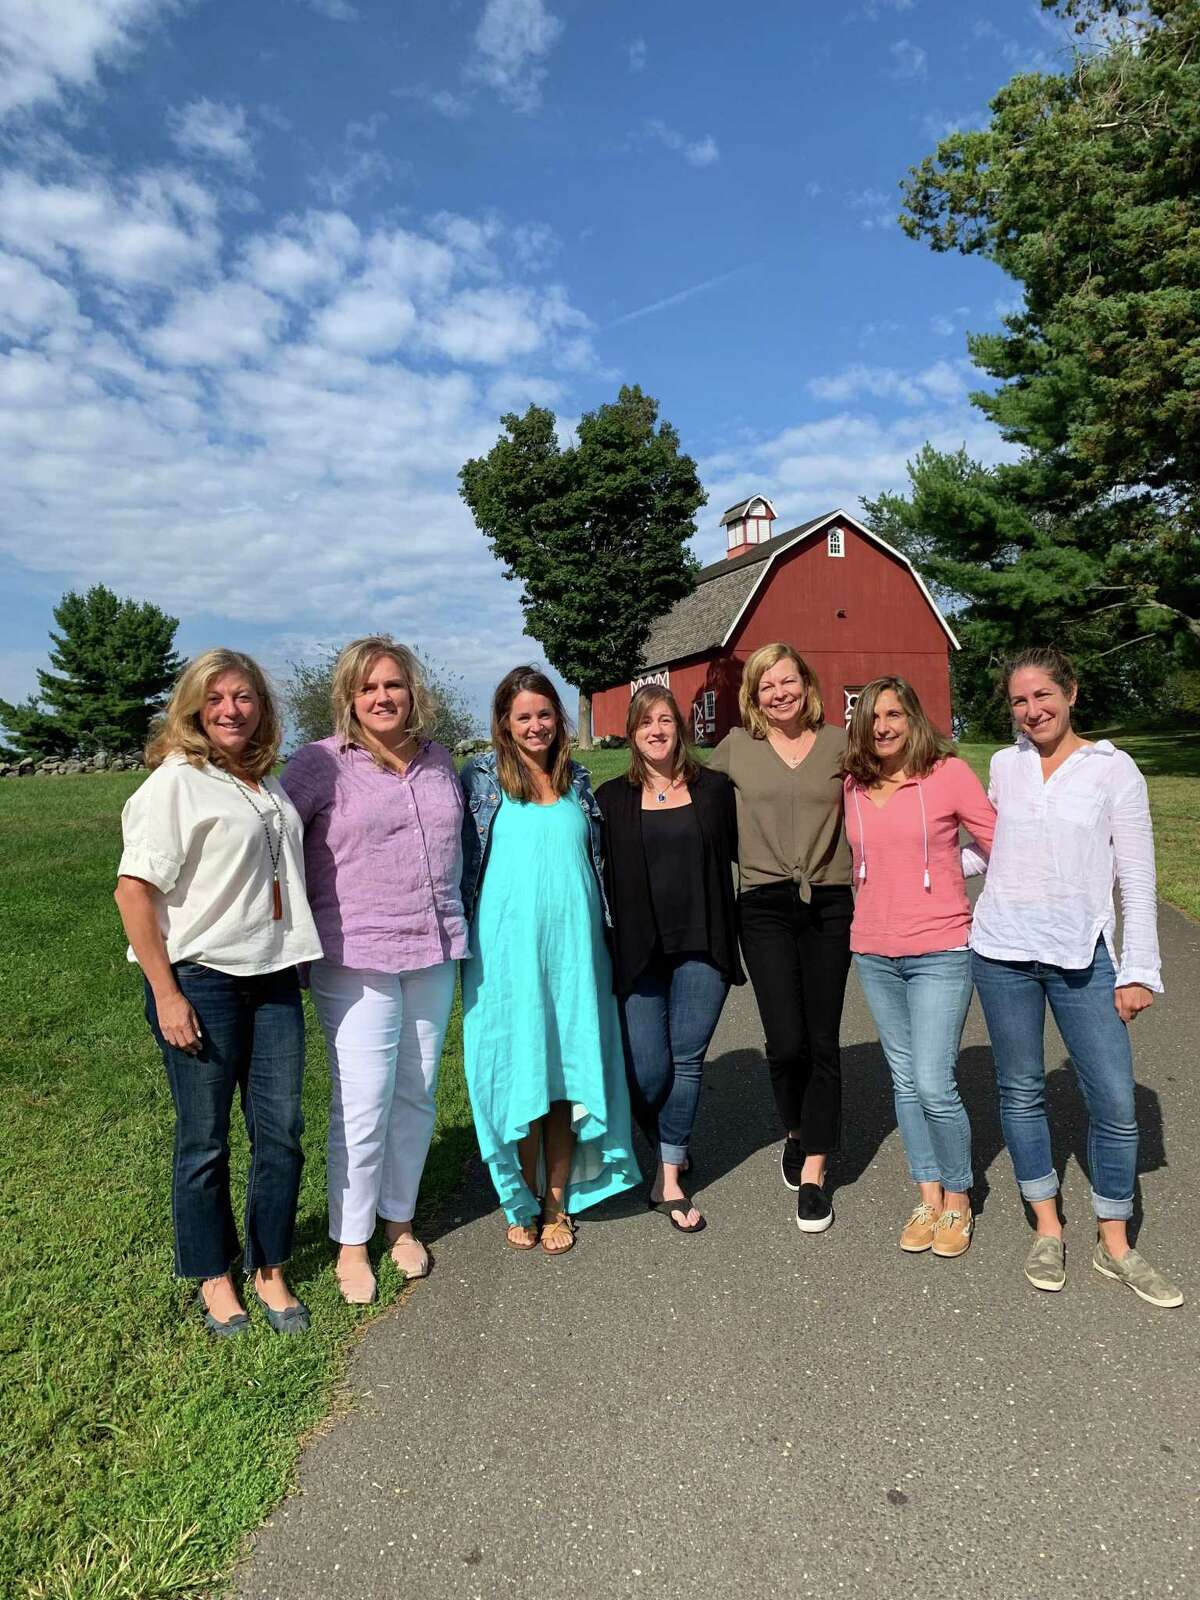 Some of Ambler Farm Day's committee chairs are, from left, Amy Foodman, Laurie Musilli, Laura Guzewicz, Amy Palma, Debbie Corrigan, Lisa McGorty and Margo Silvian. Ambler Farm Day is Sept. 22, at 257 Hurlbutt Street.